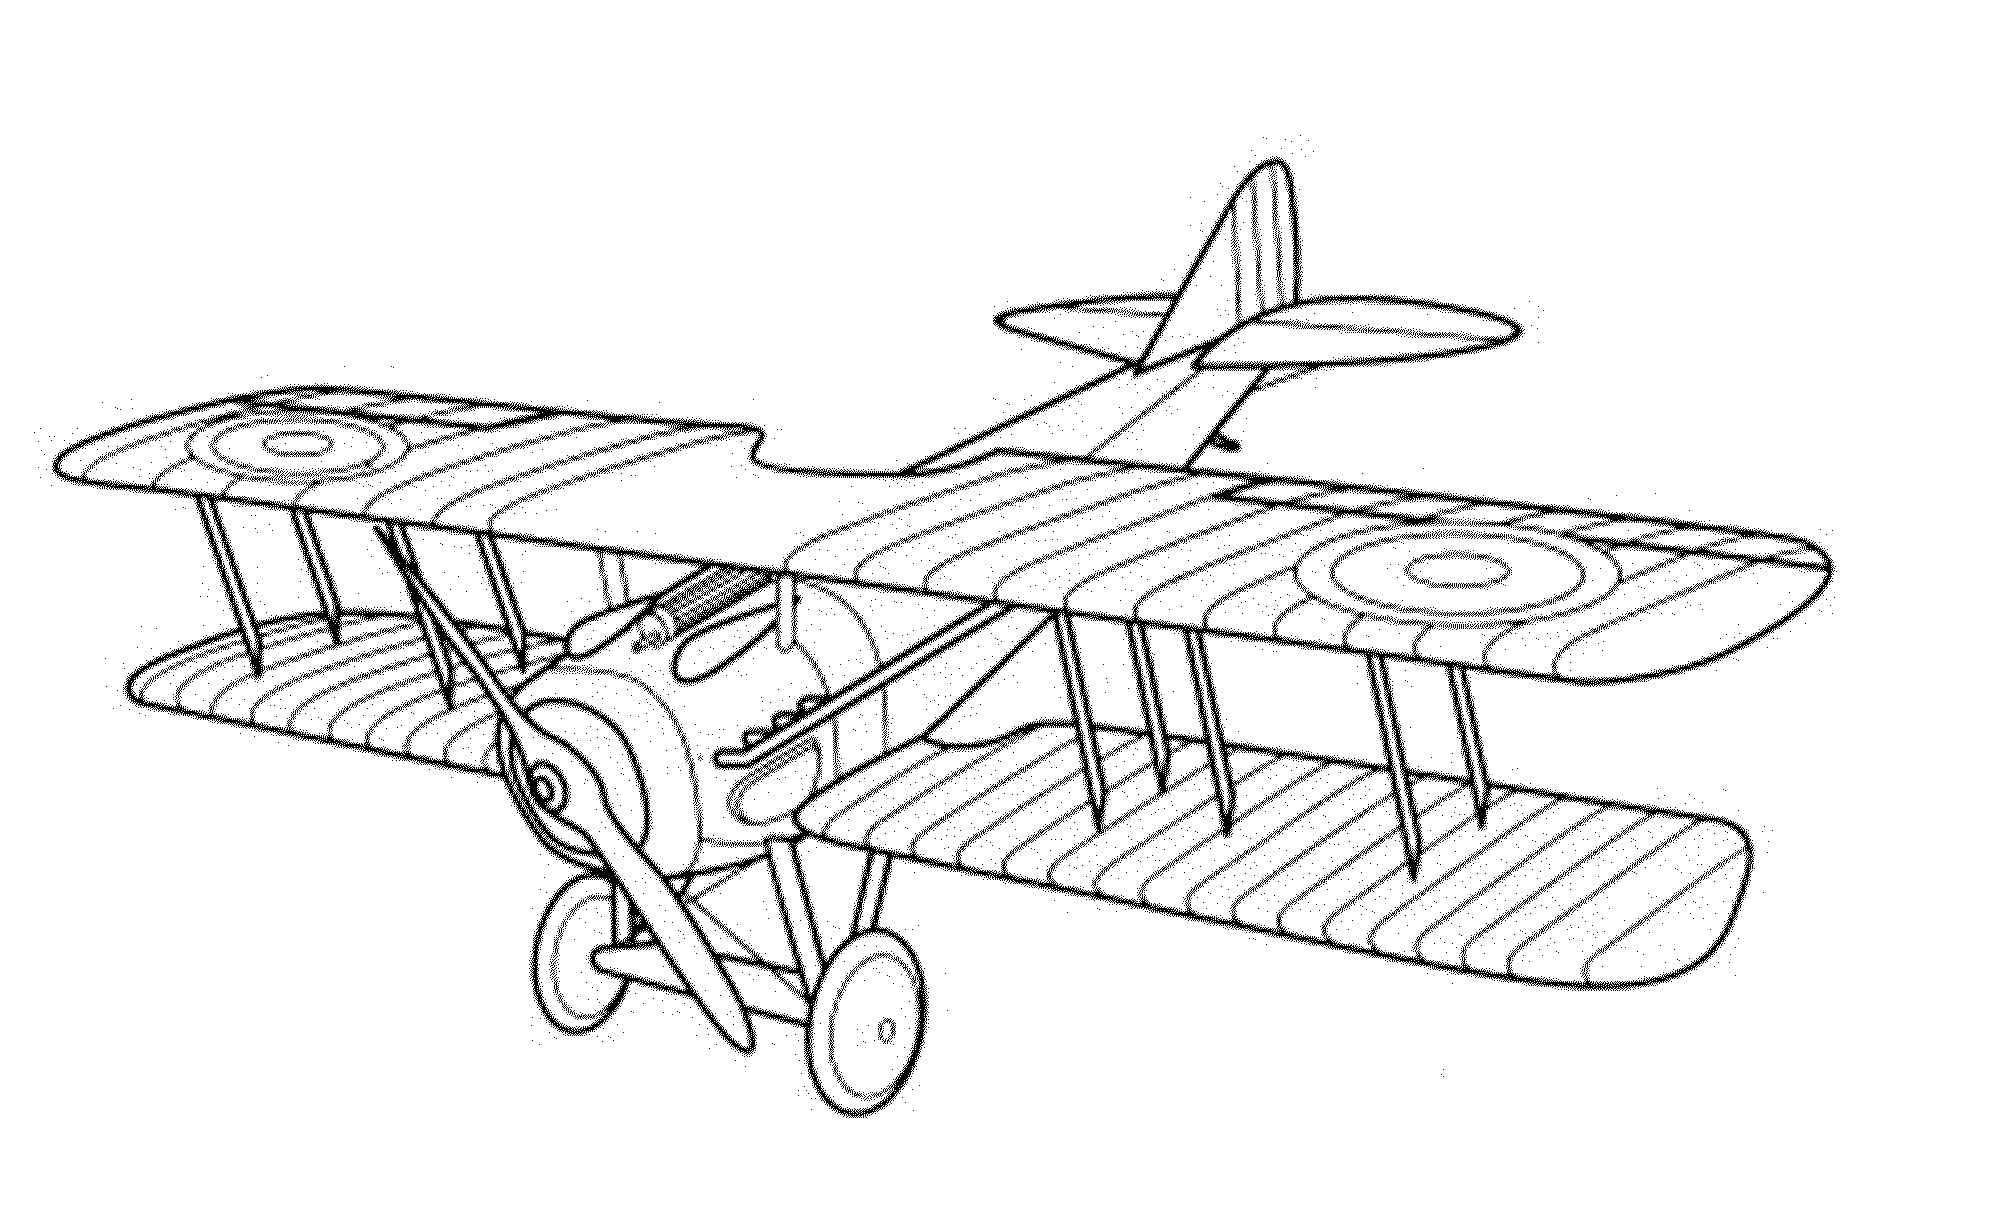 plane coloring sheets print download the sophisticated transportation of plane coloring sheets 1 1